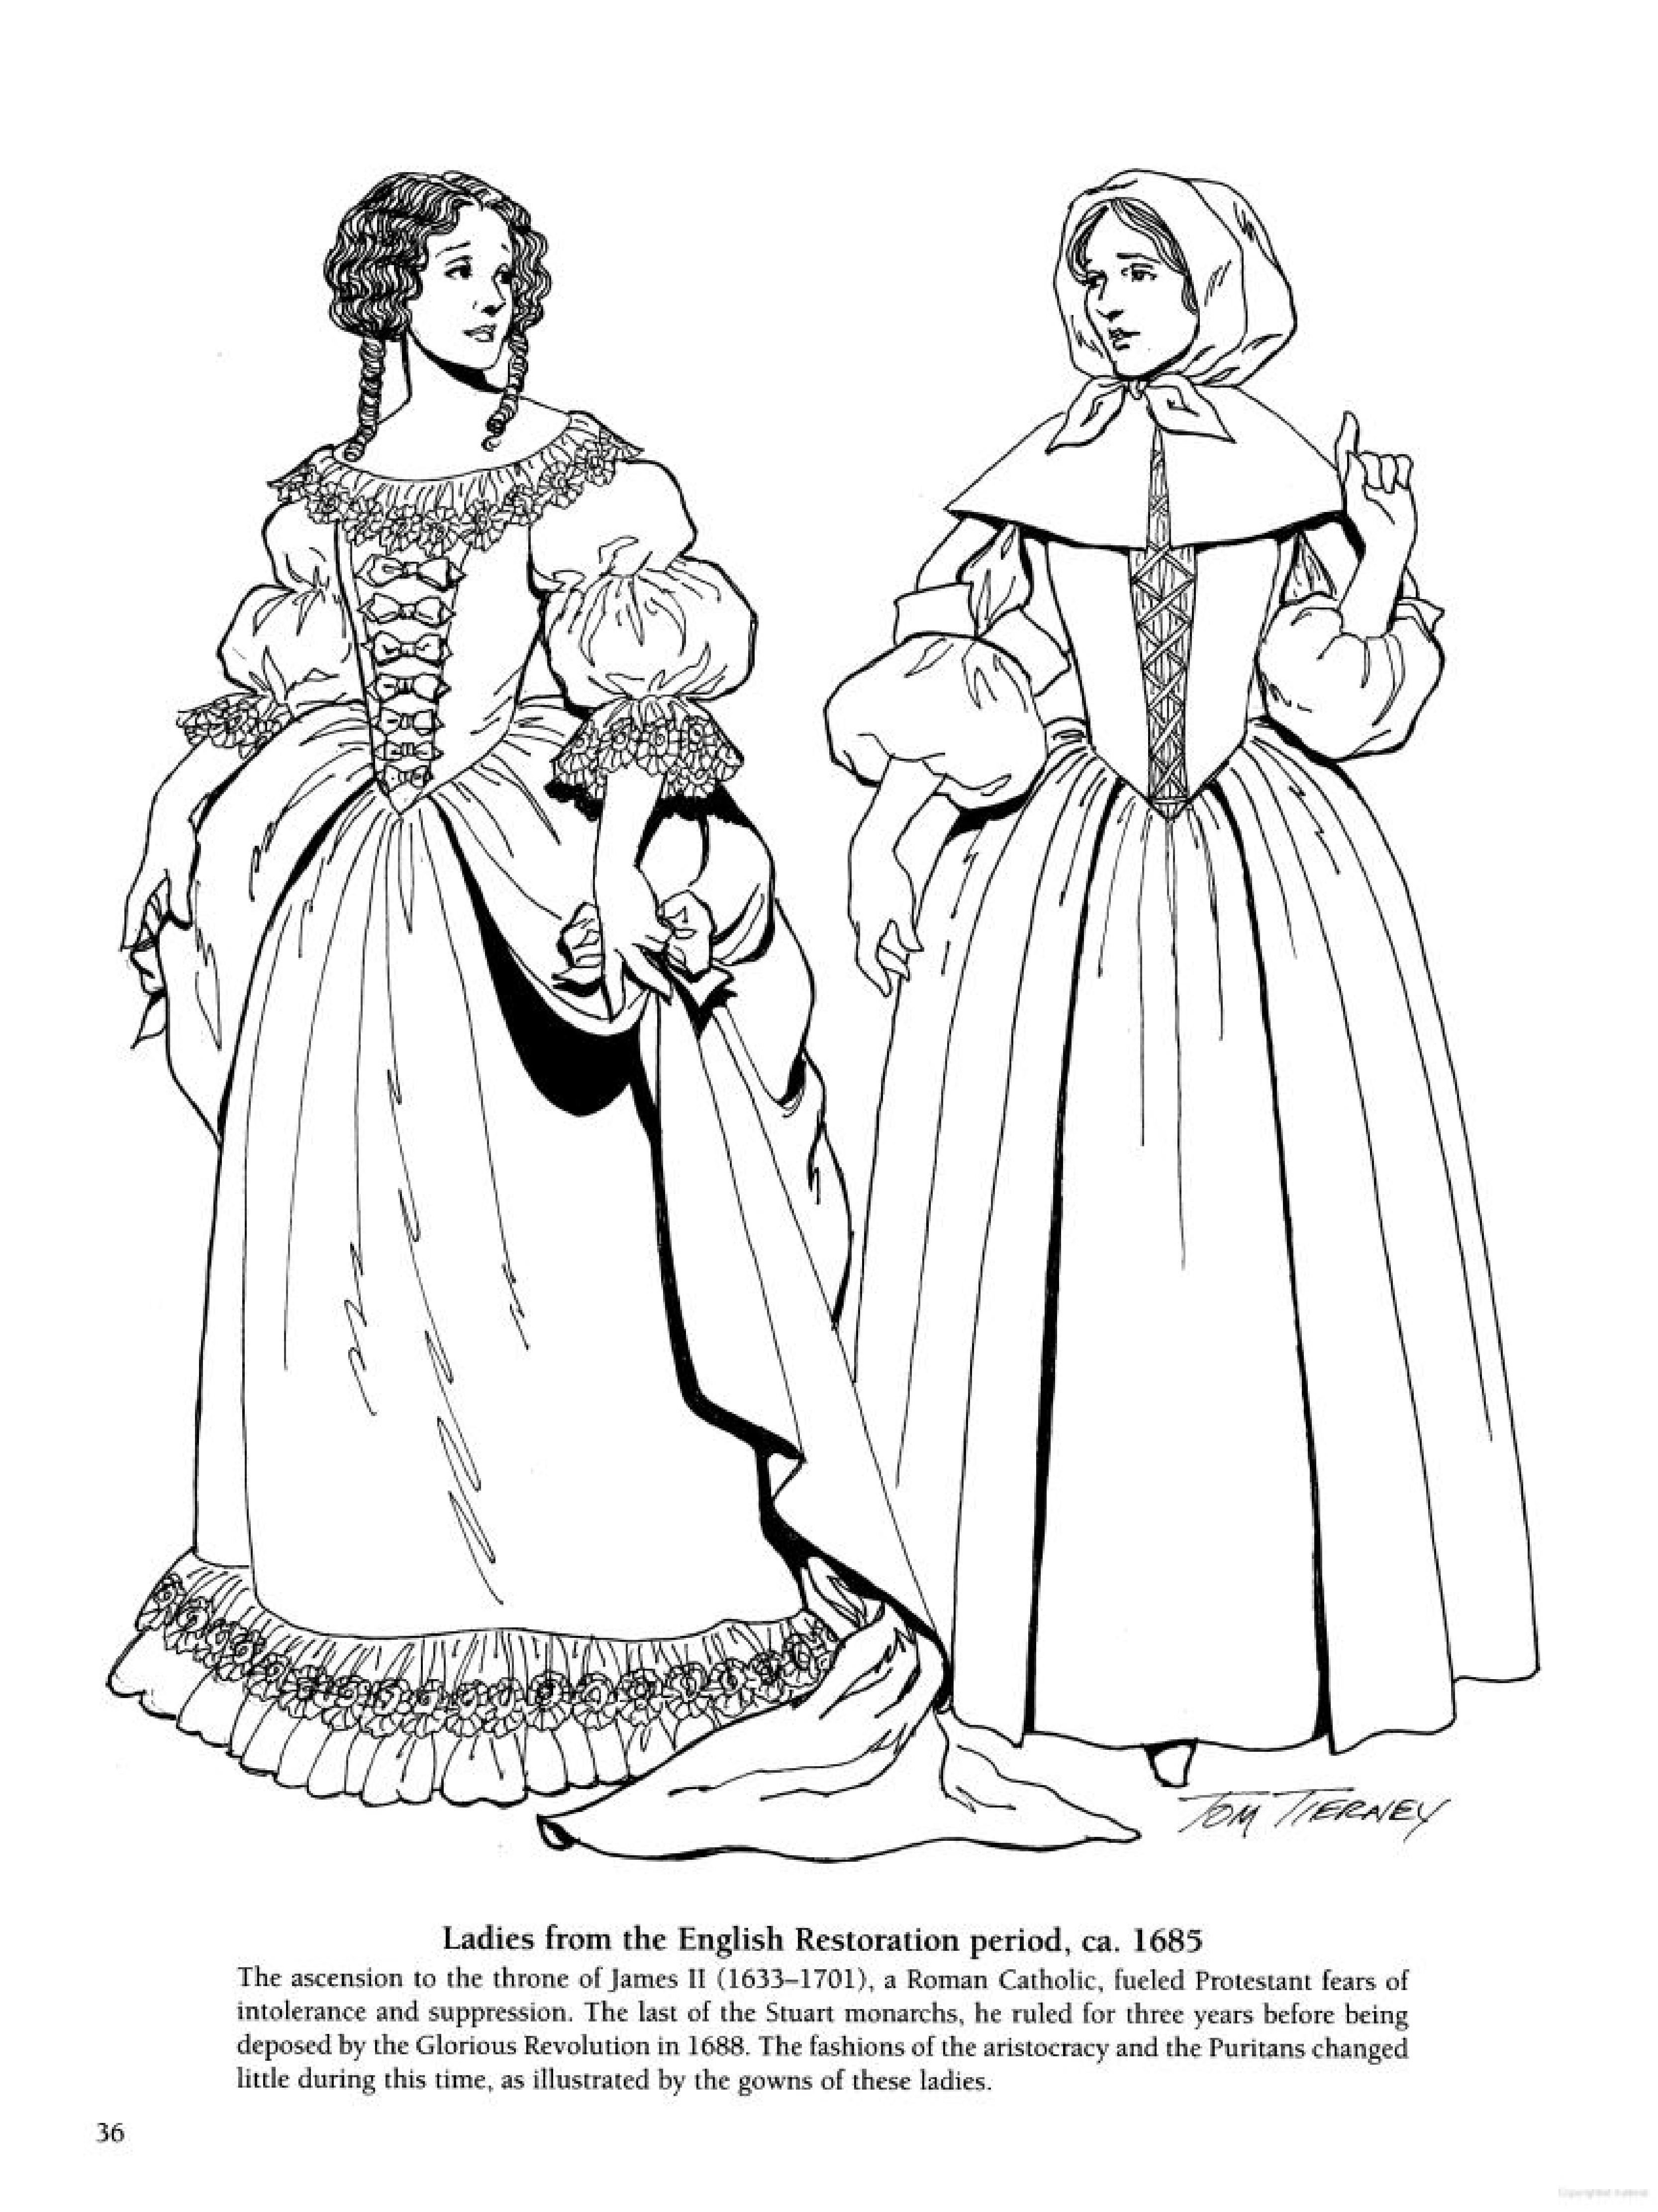 Cavalier and Puritan Fashions Ladies from the English